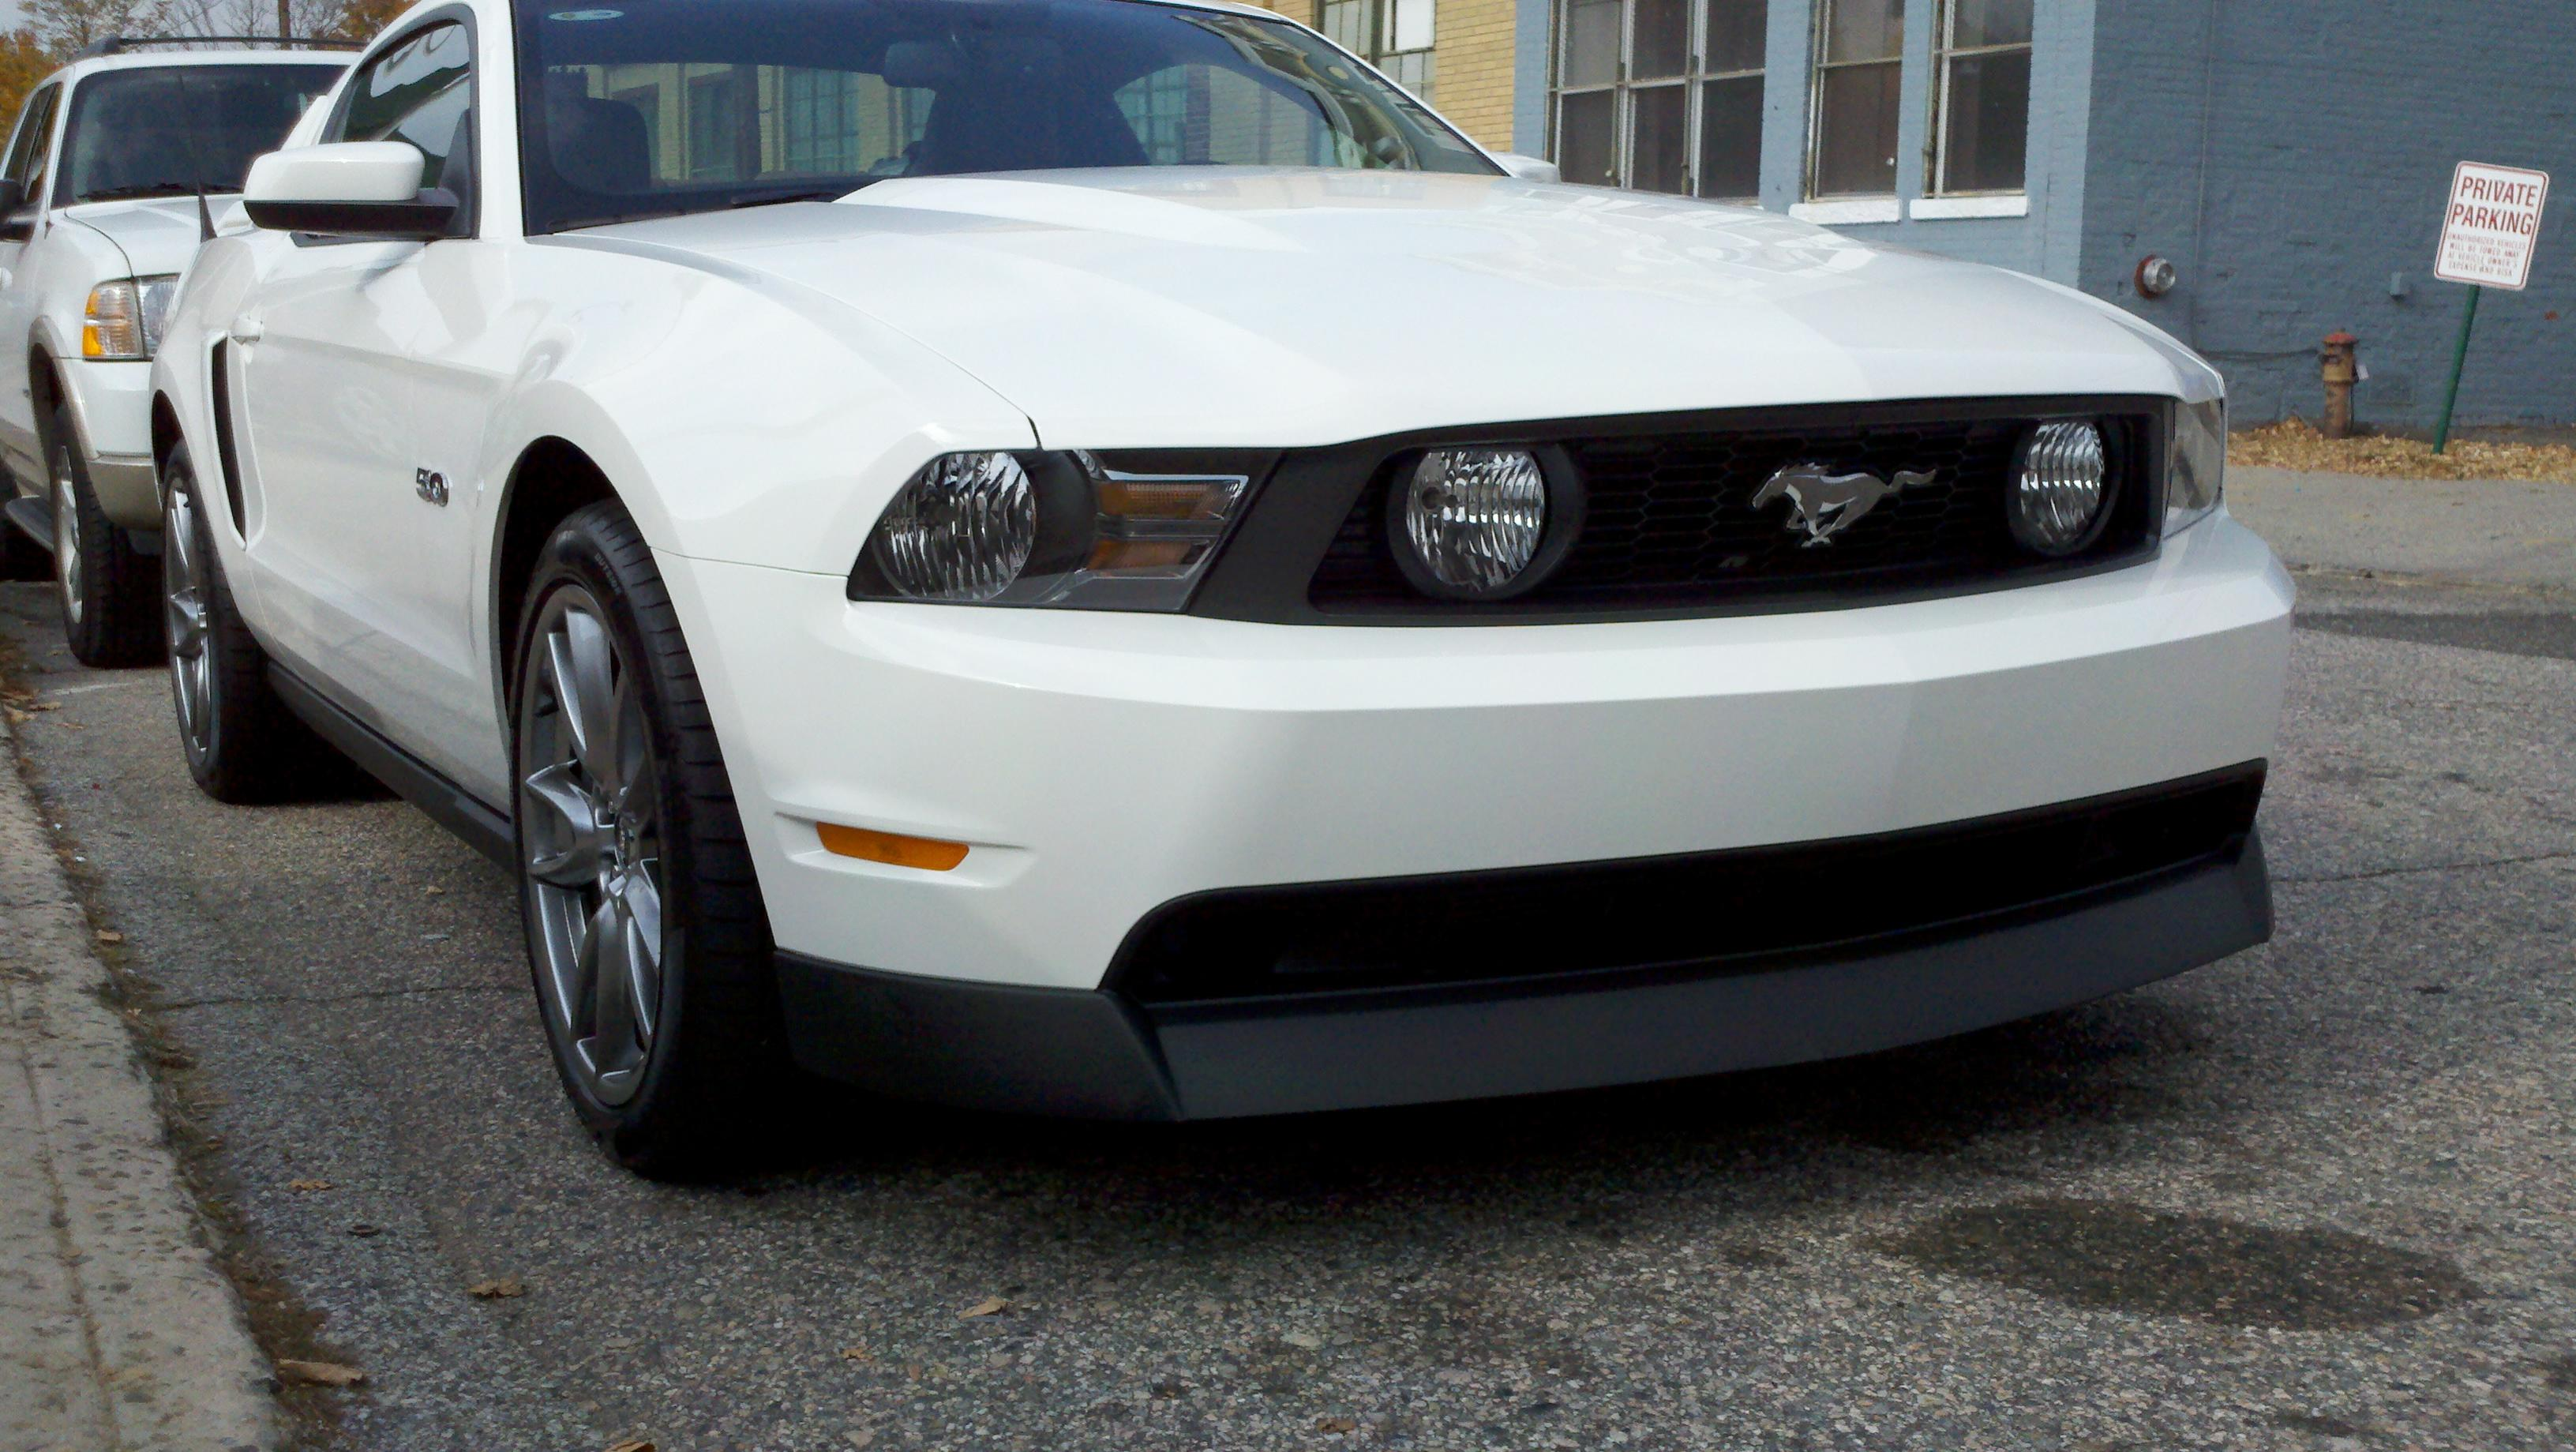 Click image for larger version  Name:stang.jpg Views:49 Size:617.1 KB ID:197402